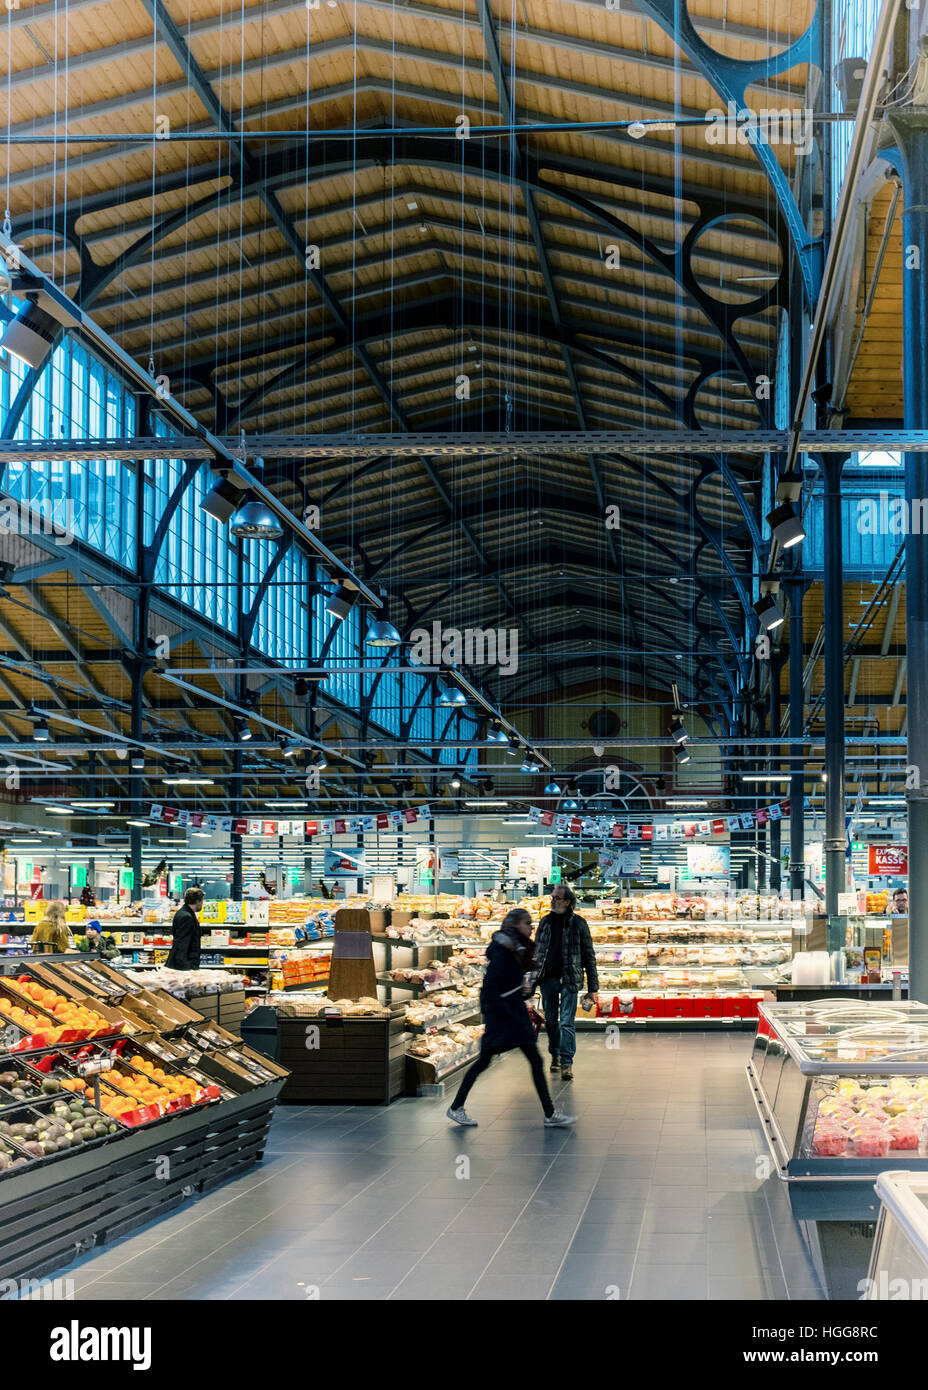 Rewe Supermarket aisle and shoppers in beautiful newly renovated old market hall building, Invalidenstrasse, Mitte, - Stock Image